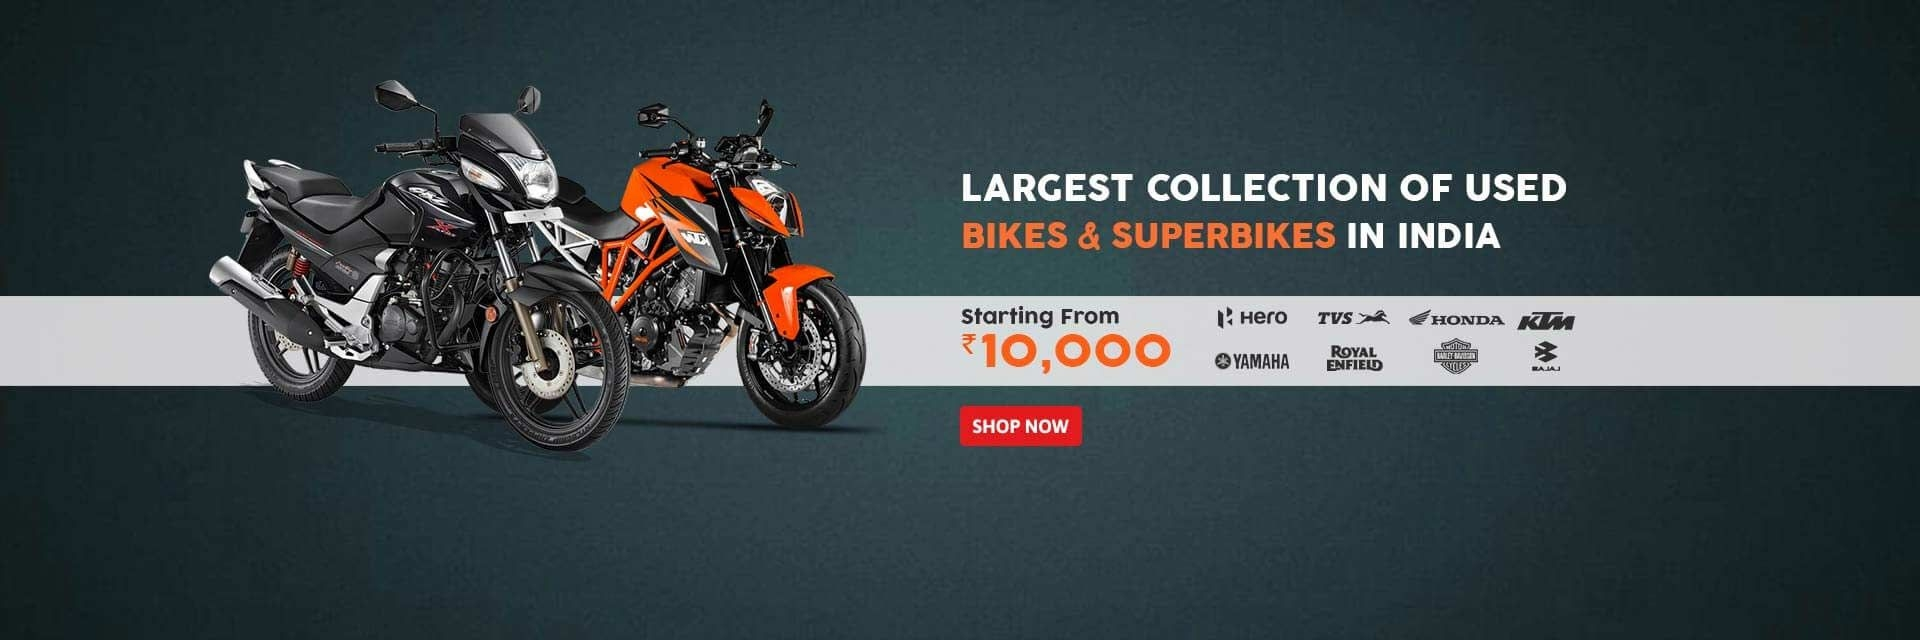 Buy bikes and super bikes in India